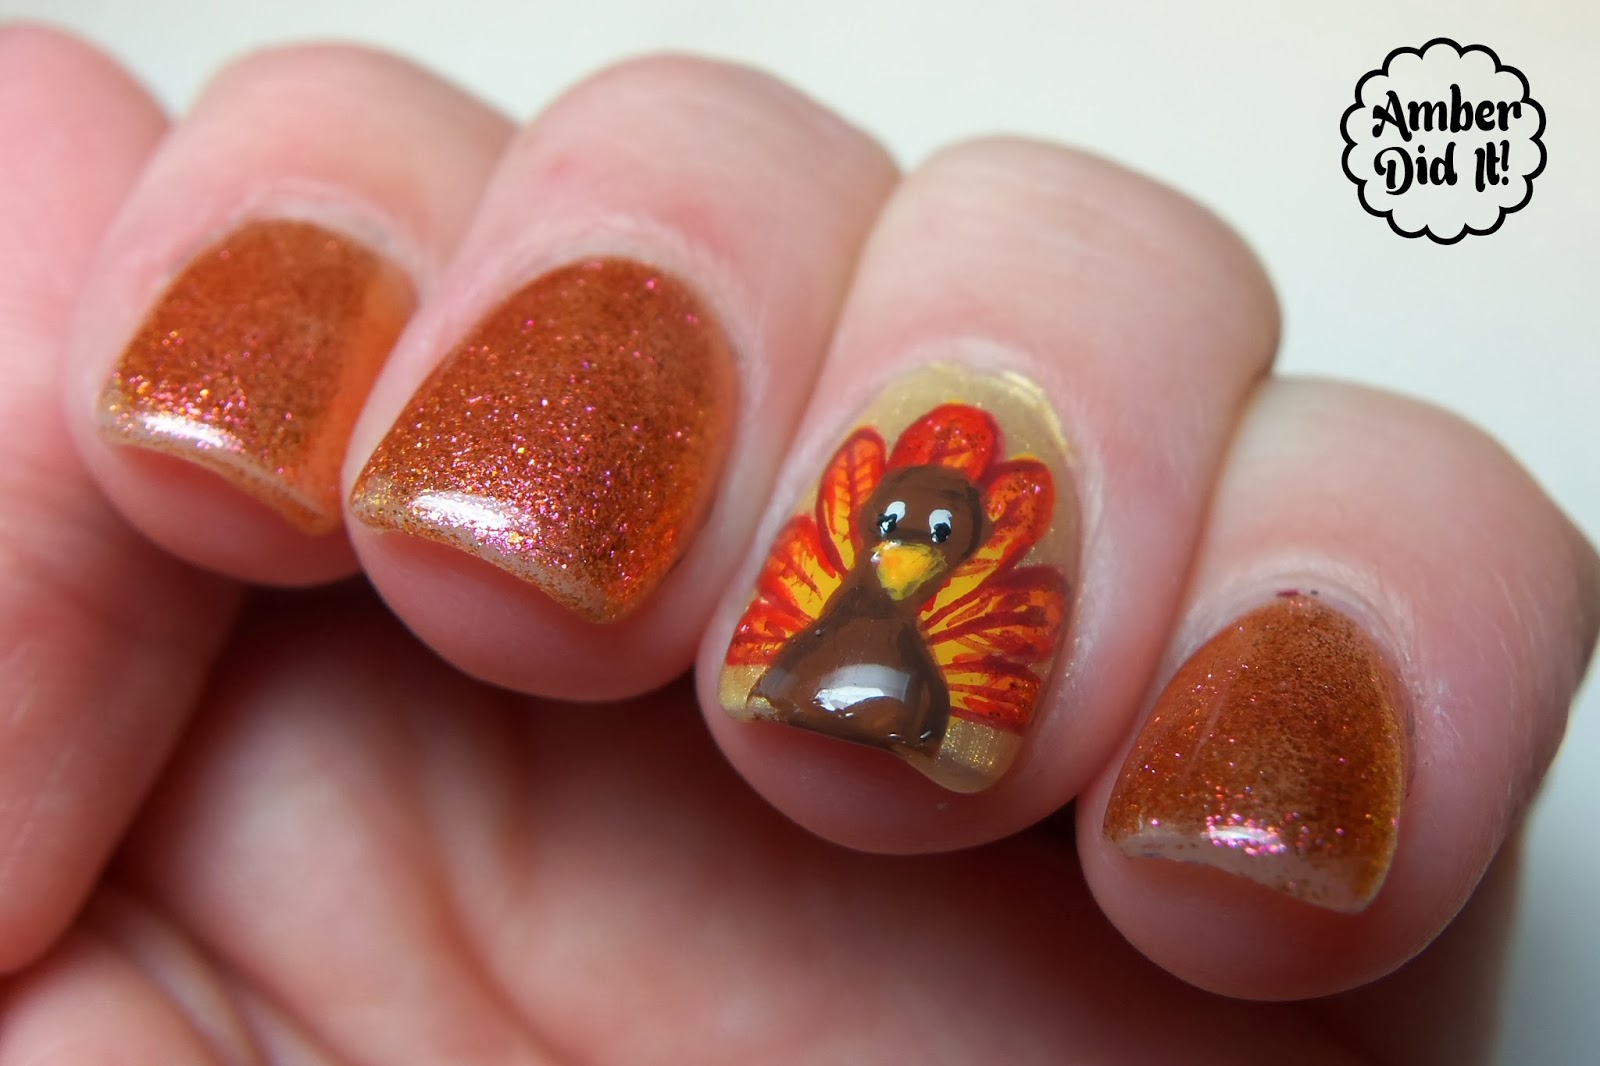 Nails for thanksgiving beautify themselves with sweet nails in the city and the accent nail is gelish allure with the turkey prinsesfo Image collections